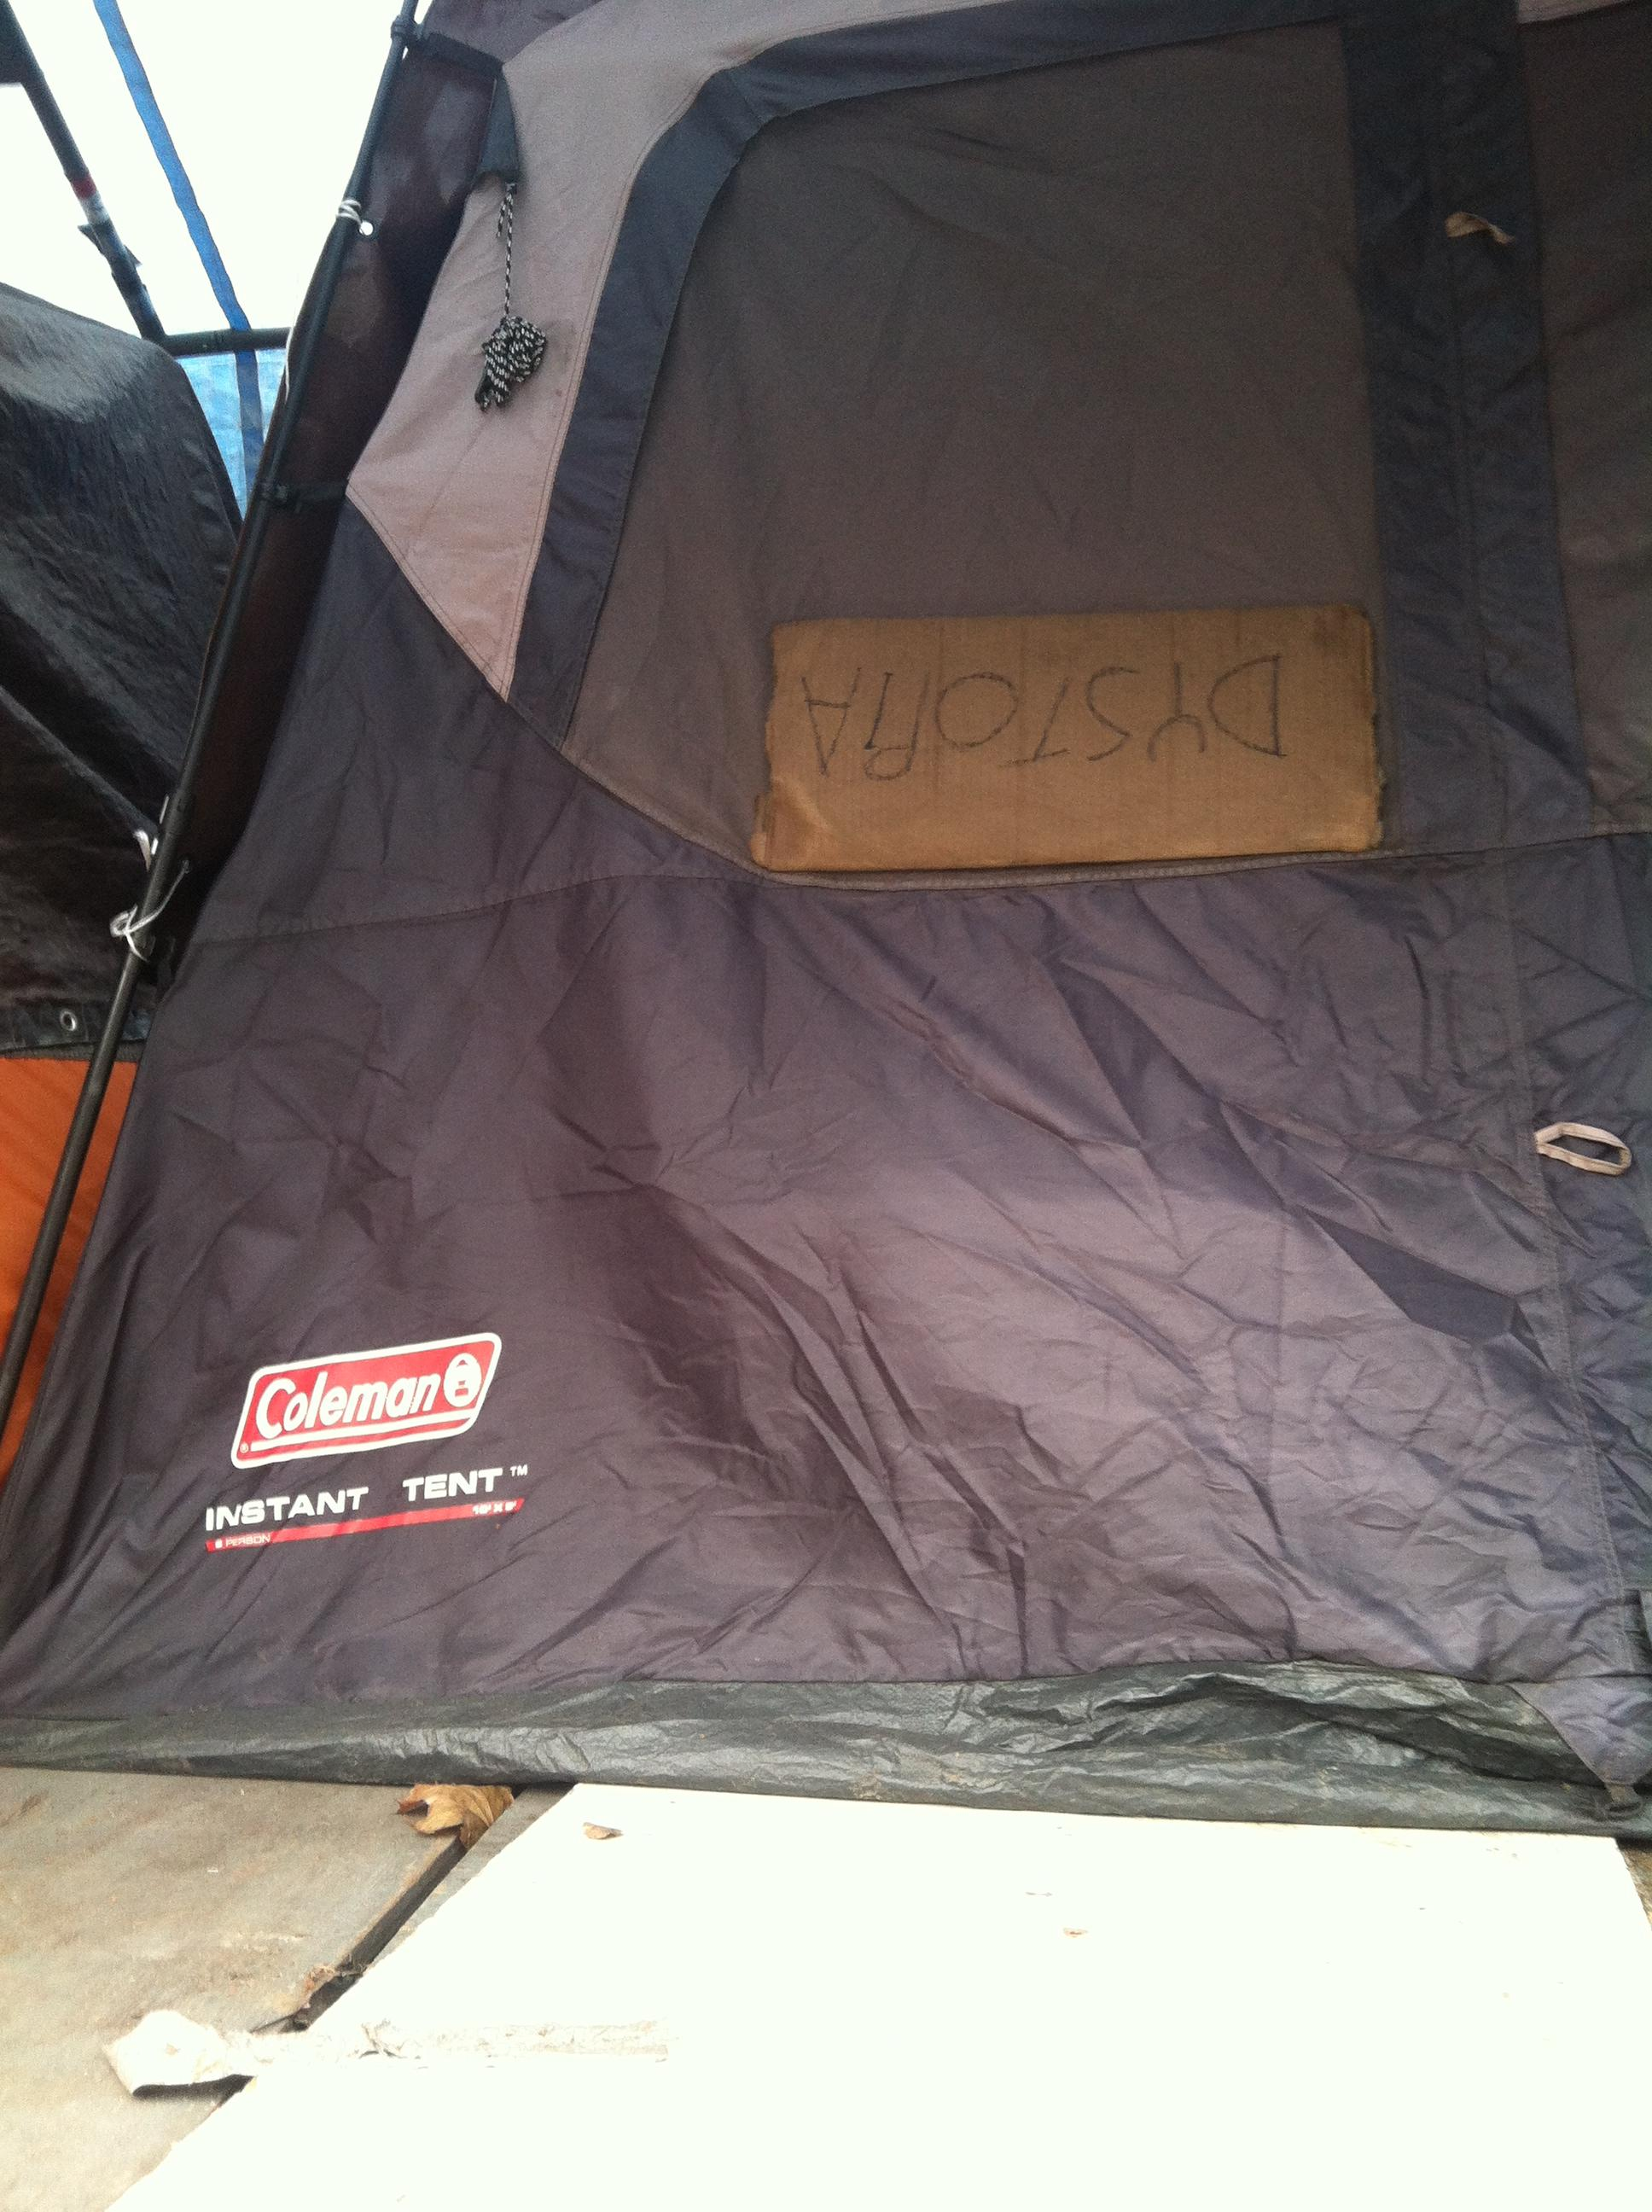 Residents at Seattleu0027s Tent City 3 homeless c& get to name their tents. & Seattle Pacific University to Host Cityu0027s Largest Homeless Camp ...